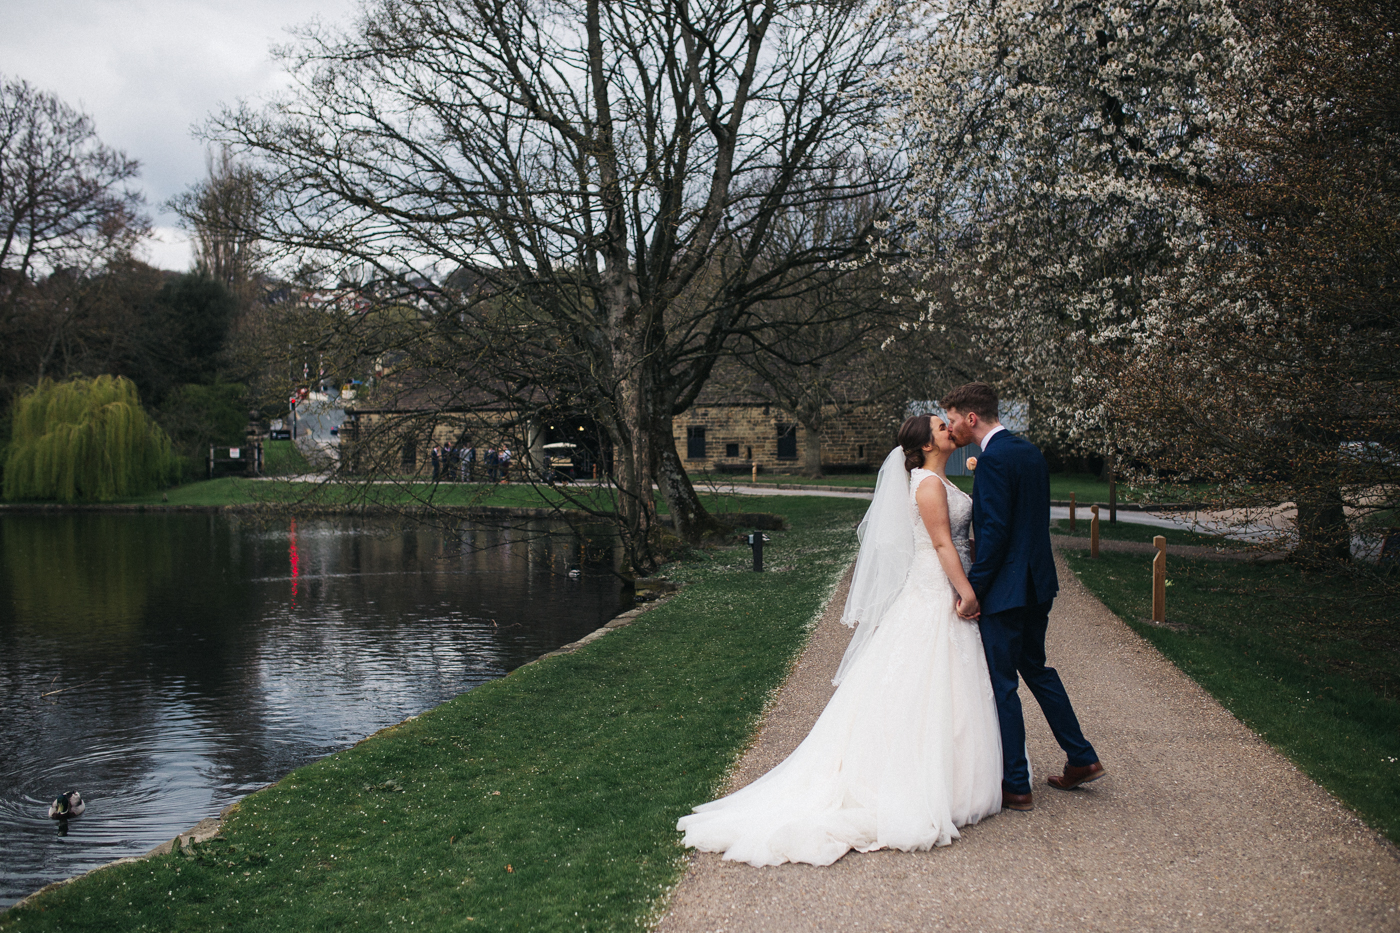 the bride and groom kiss walking along the lake. spring barn wedding at east riddlesden hall keighley west yorkshire wedding photographer